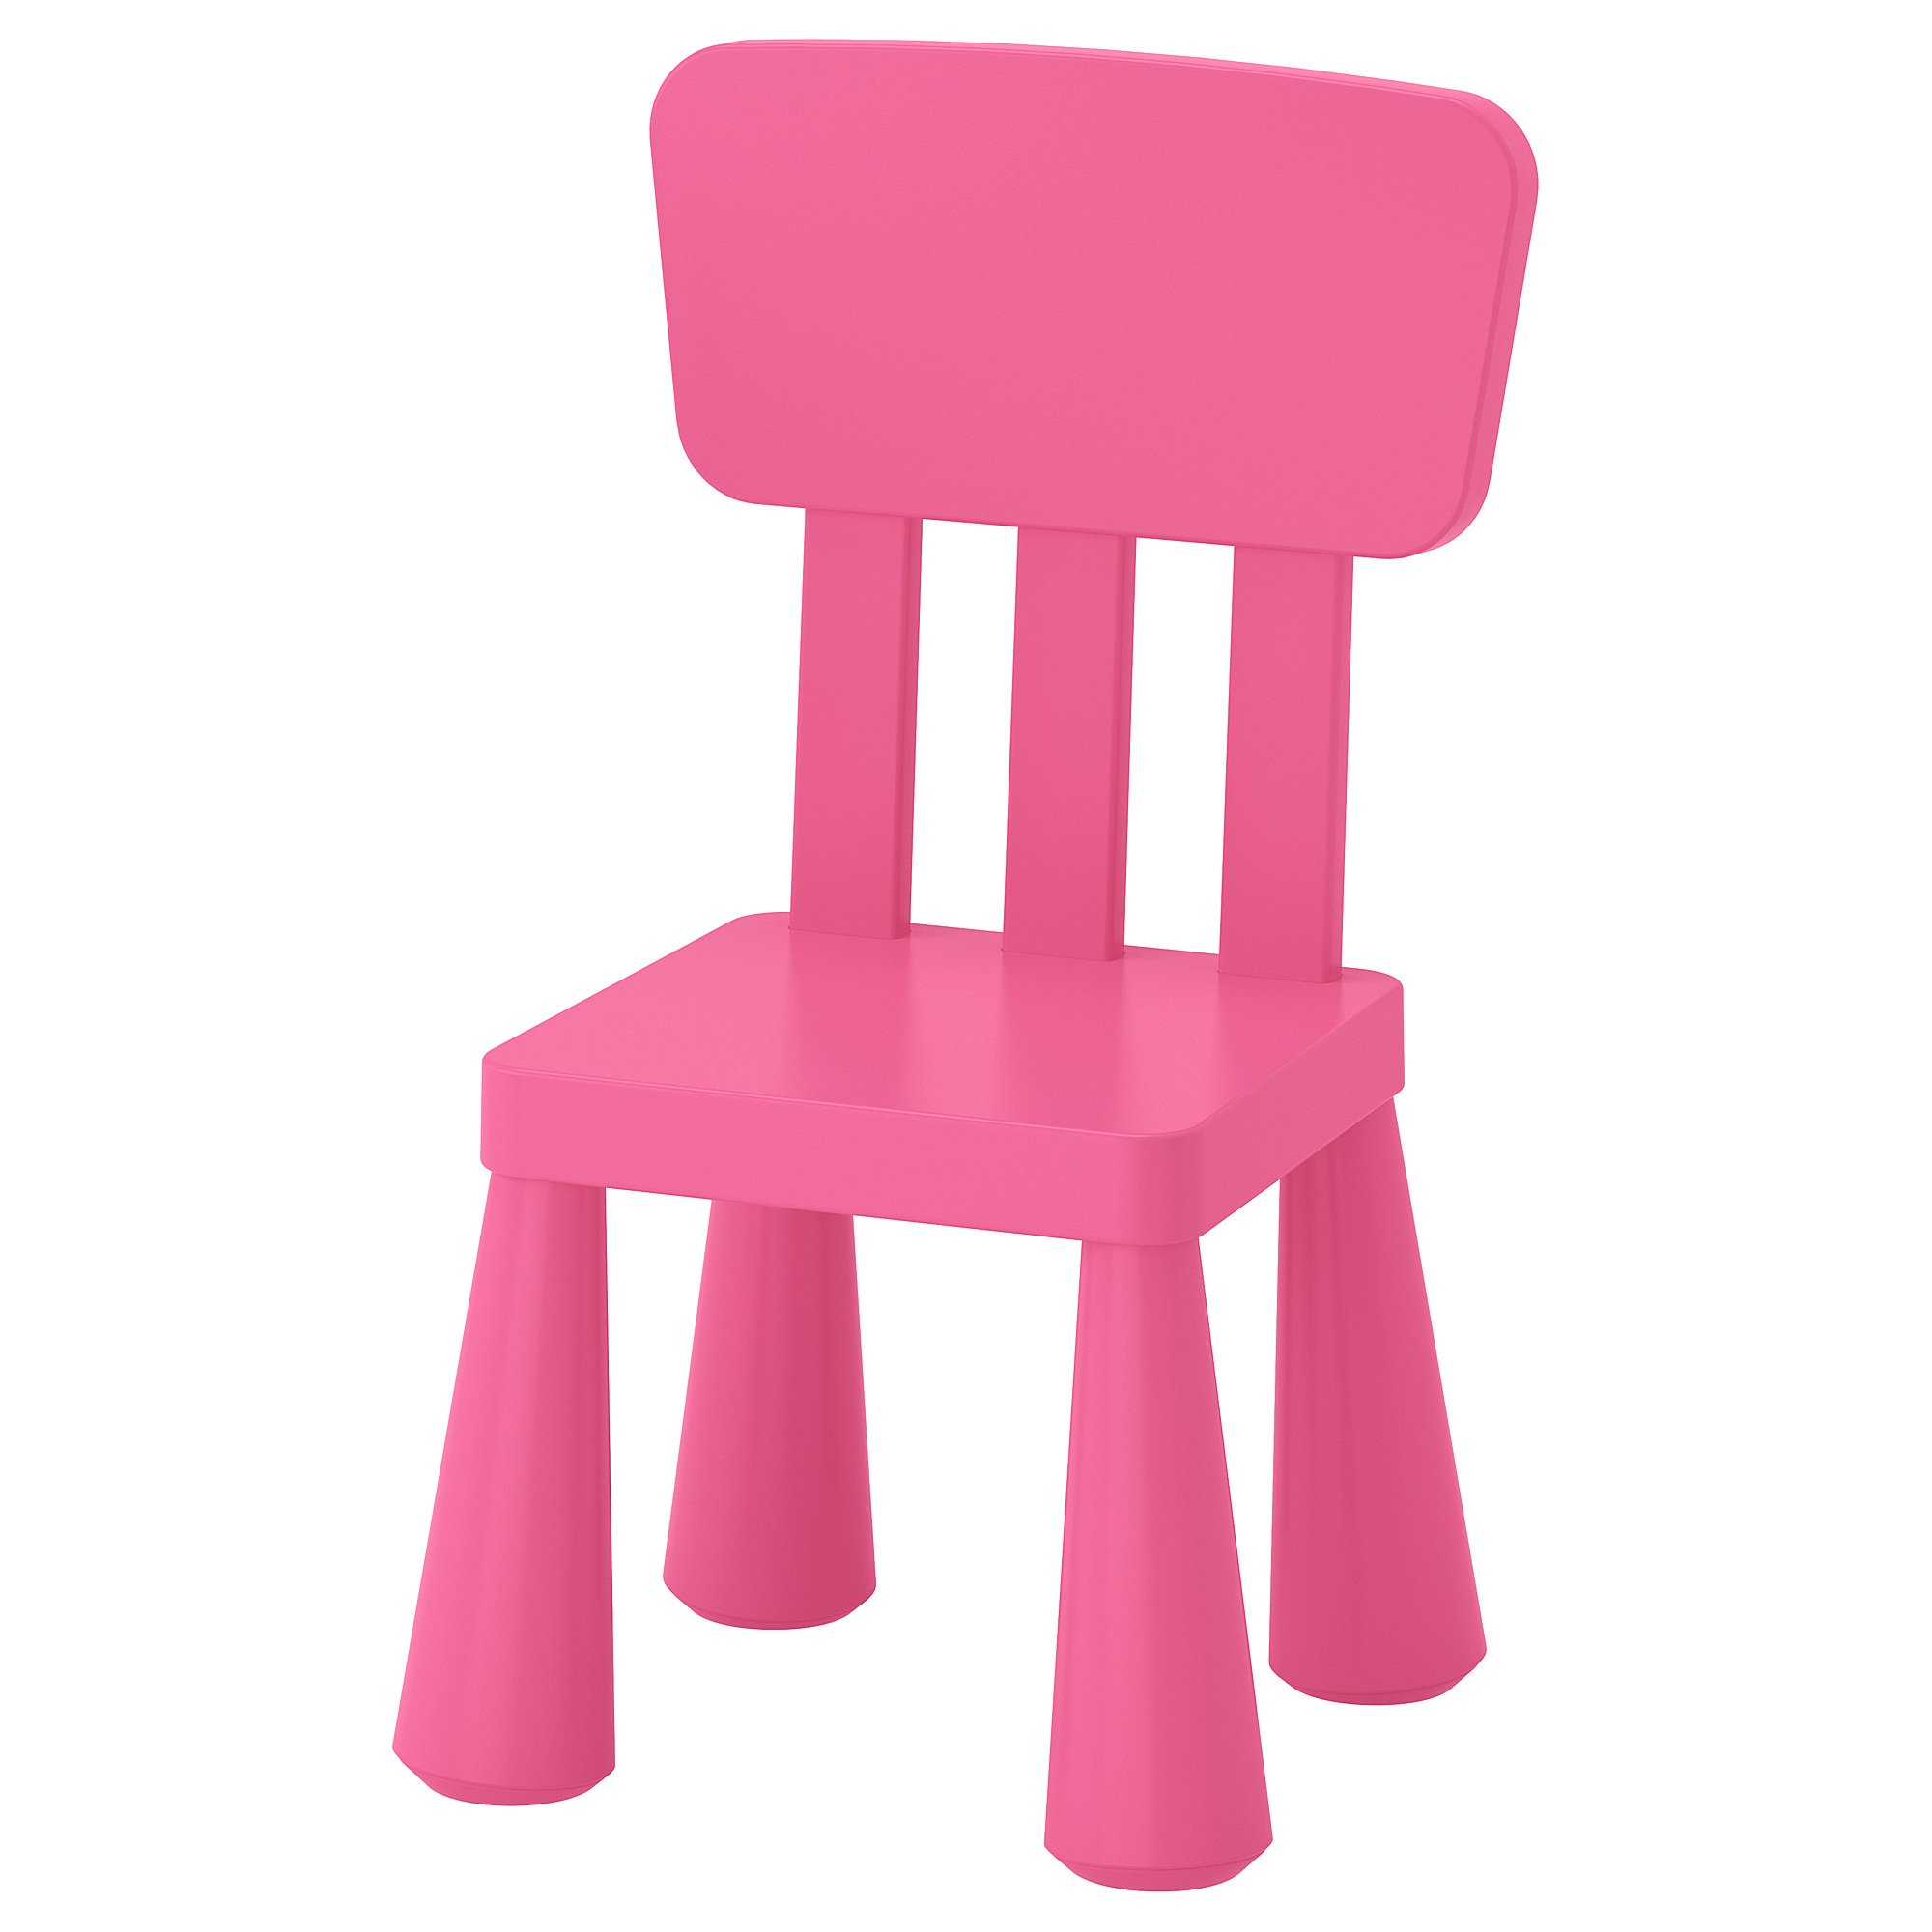 Ikea Mammut Kids Indoor / Outdoor Children's Chair, Pink Color - 1 Pack